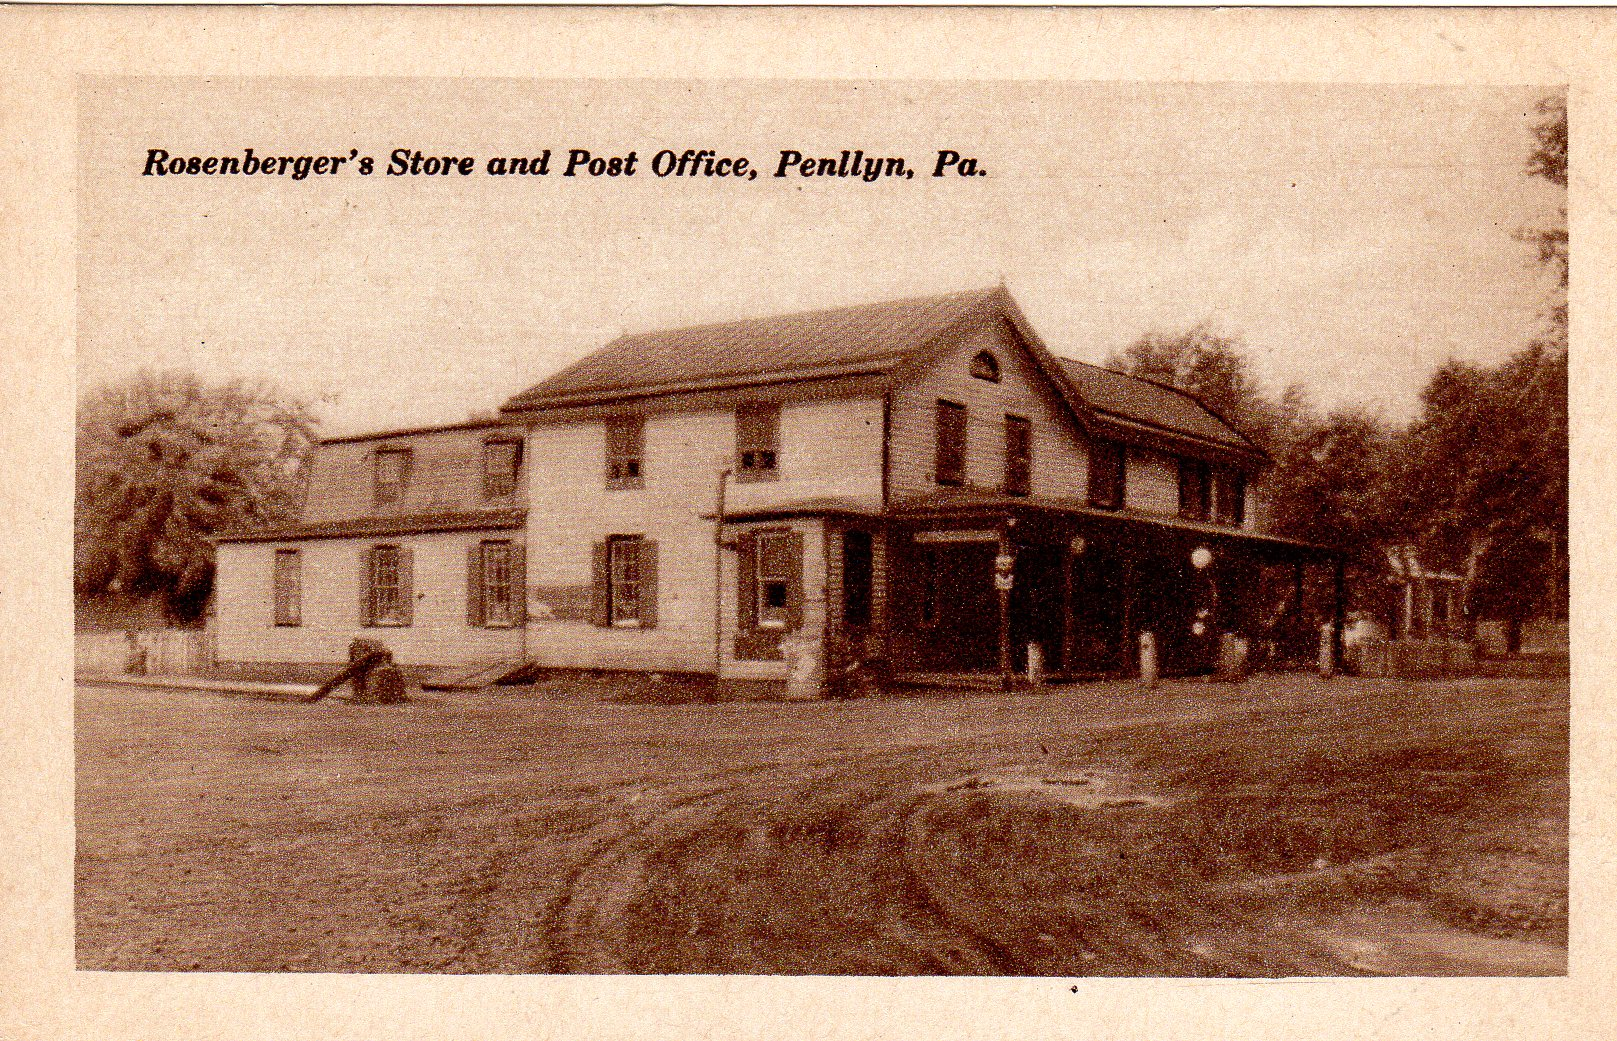 Post Card Collection (E Simon)_2682_71_Rosenbergers Store and Post Office, Penllyn, Pa